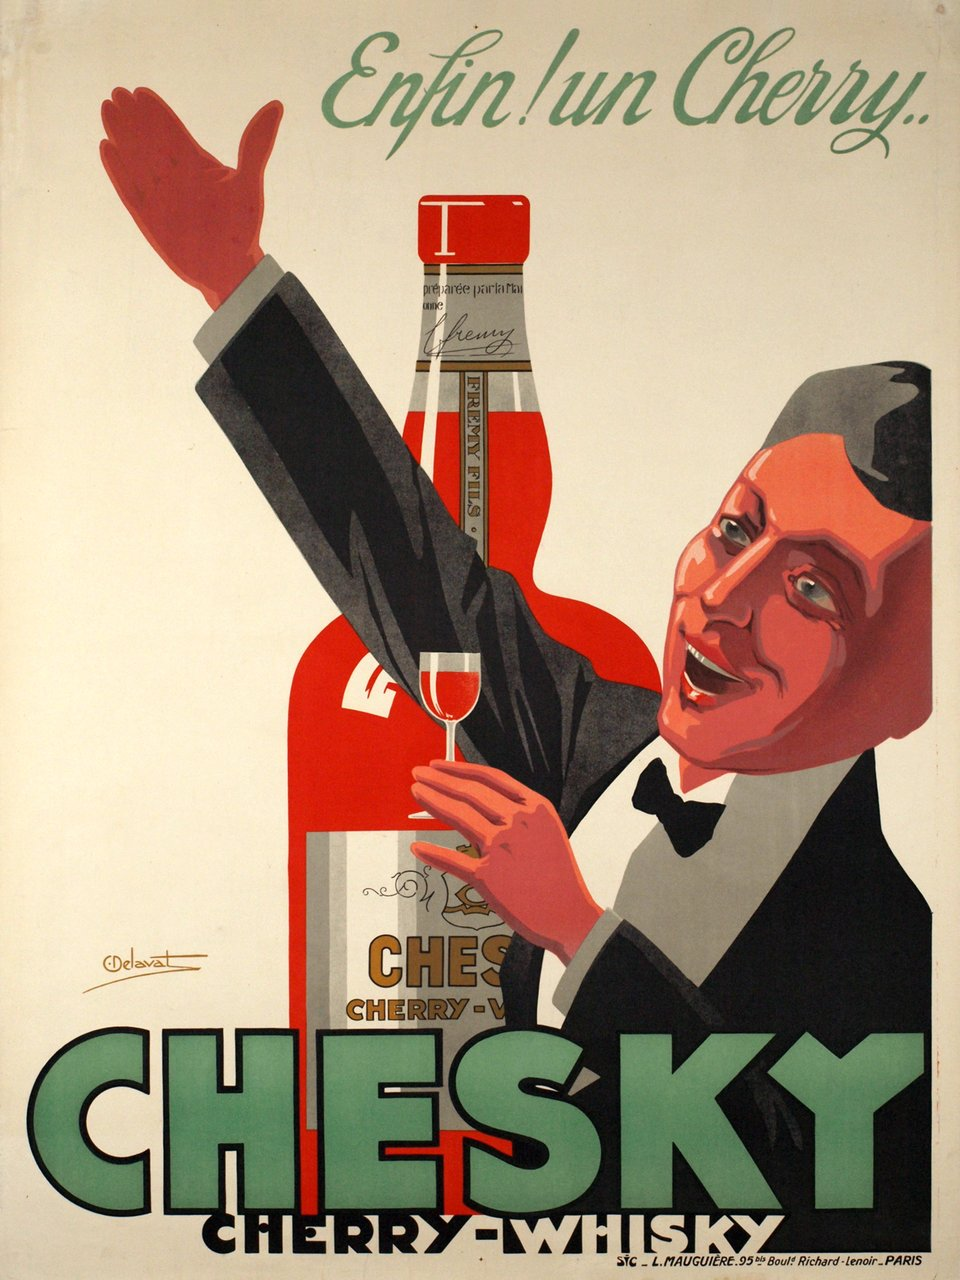 Enfin! un cherry.. Chesky, cherry-whisky – Affiche ancienne – Charles DELAVAT – 1935